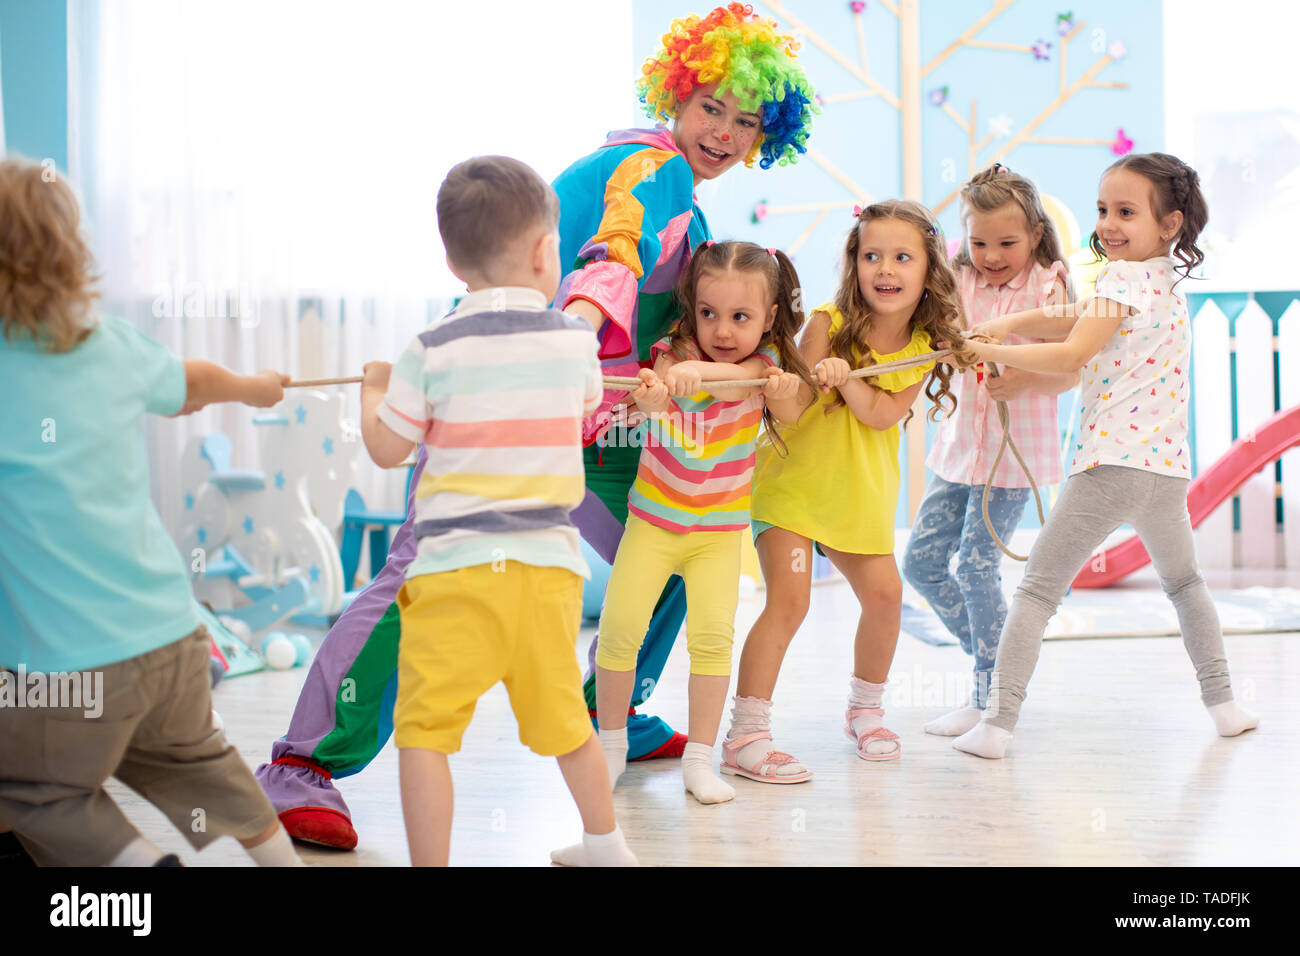 Excited kids and clown playing tug of war in club - Stock Image